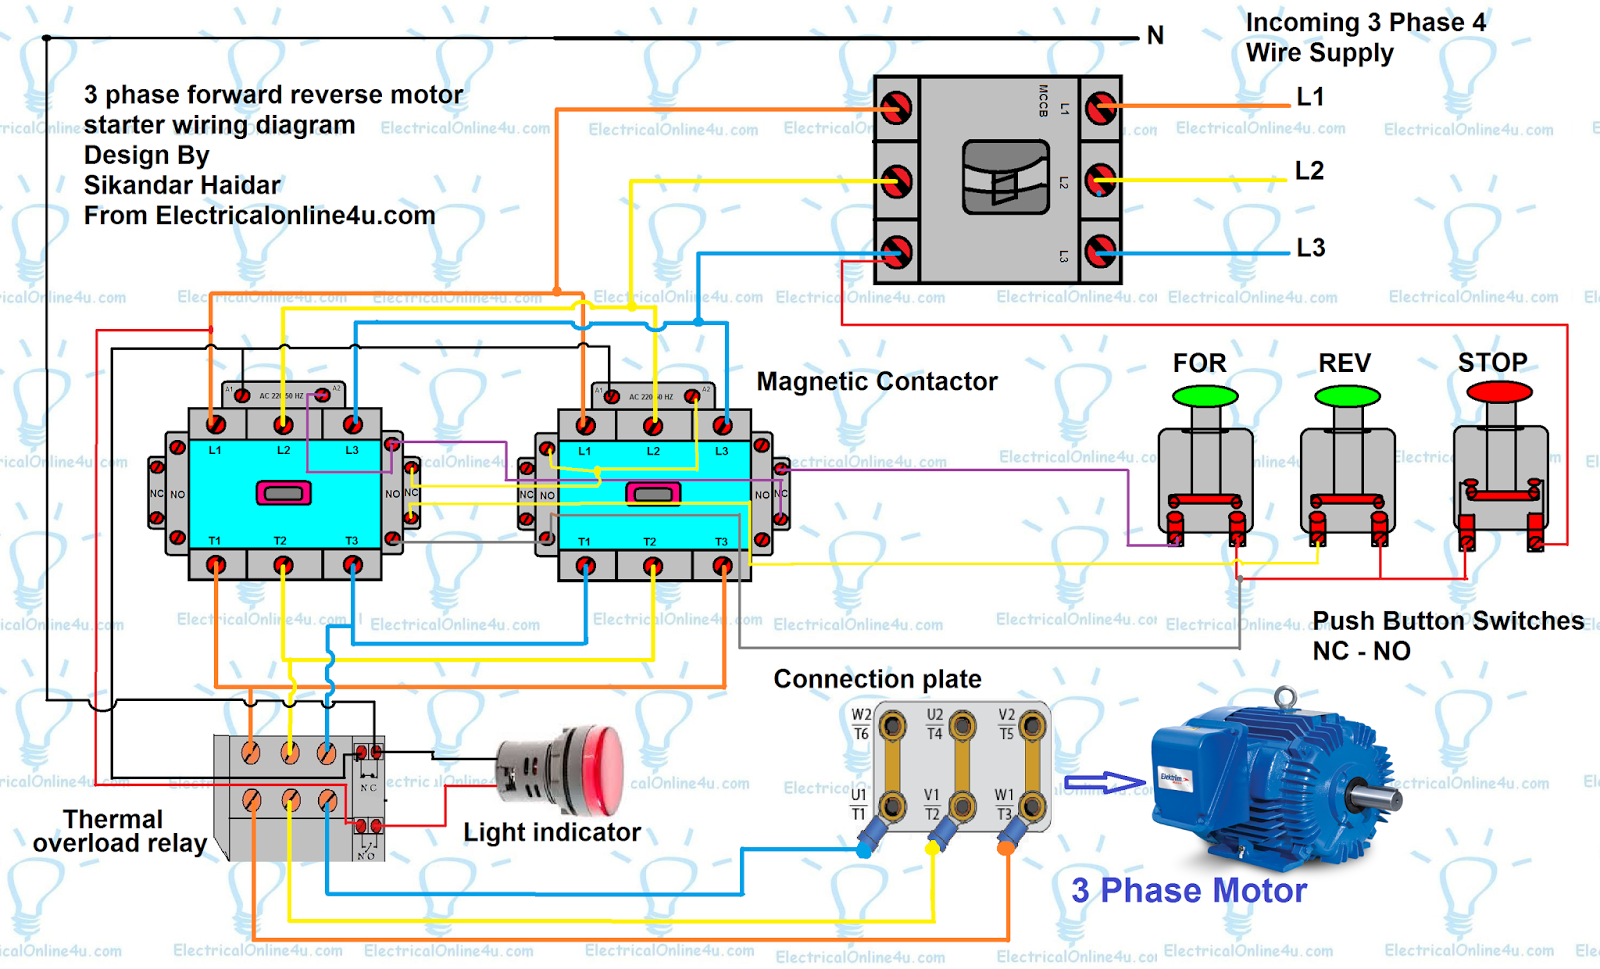 hight resolution of forward reverse motor control diagram for 3 phase motor electrical rh pinterest co uk circuit diagram